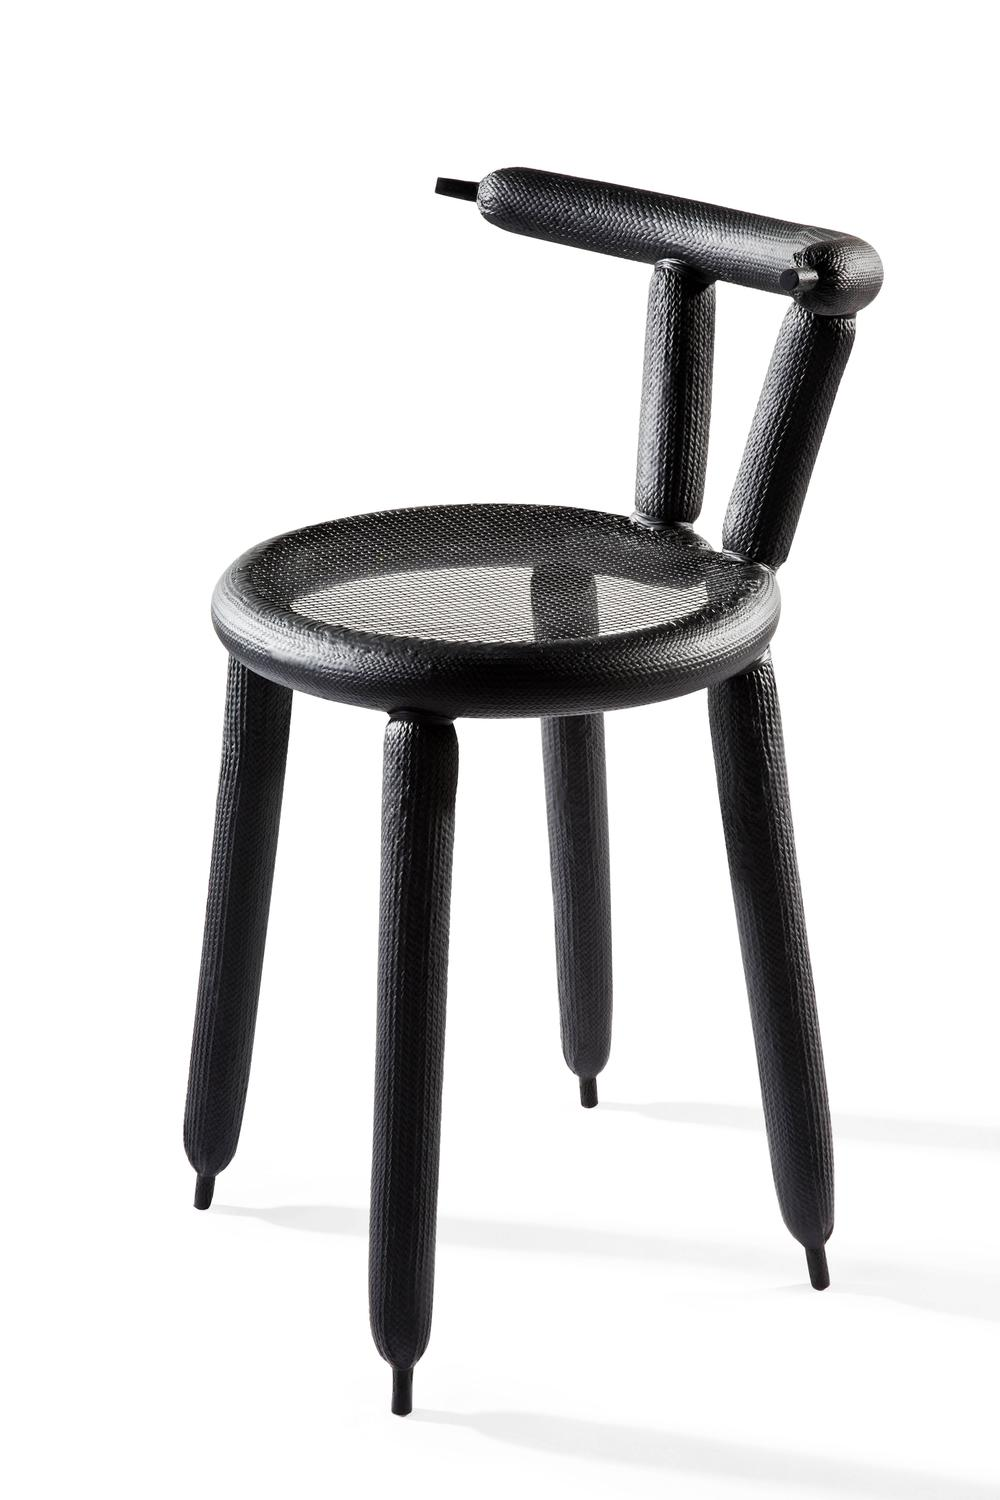 black carbon balloon chair by marcel wanders for sale at 1stdibs. Black Bedroom Furniture Sets. Home Design Ideas